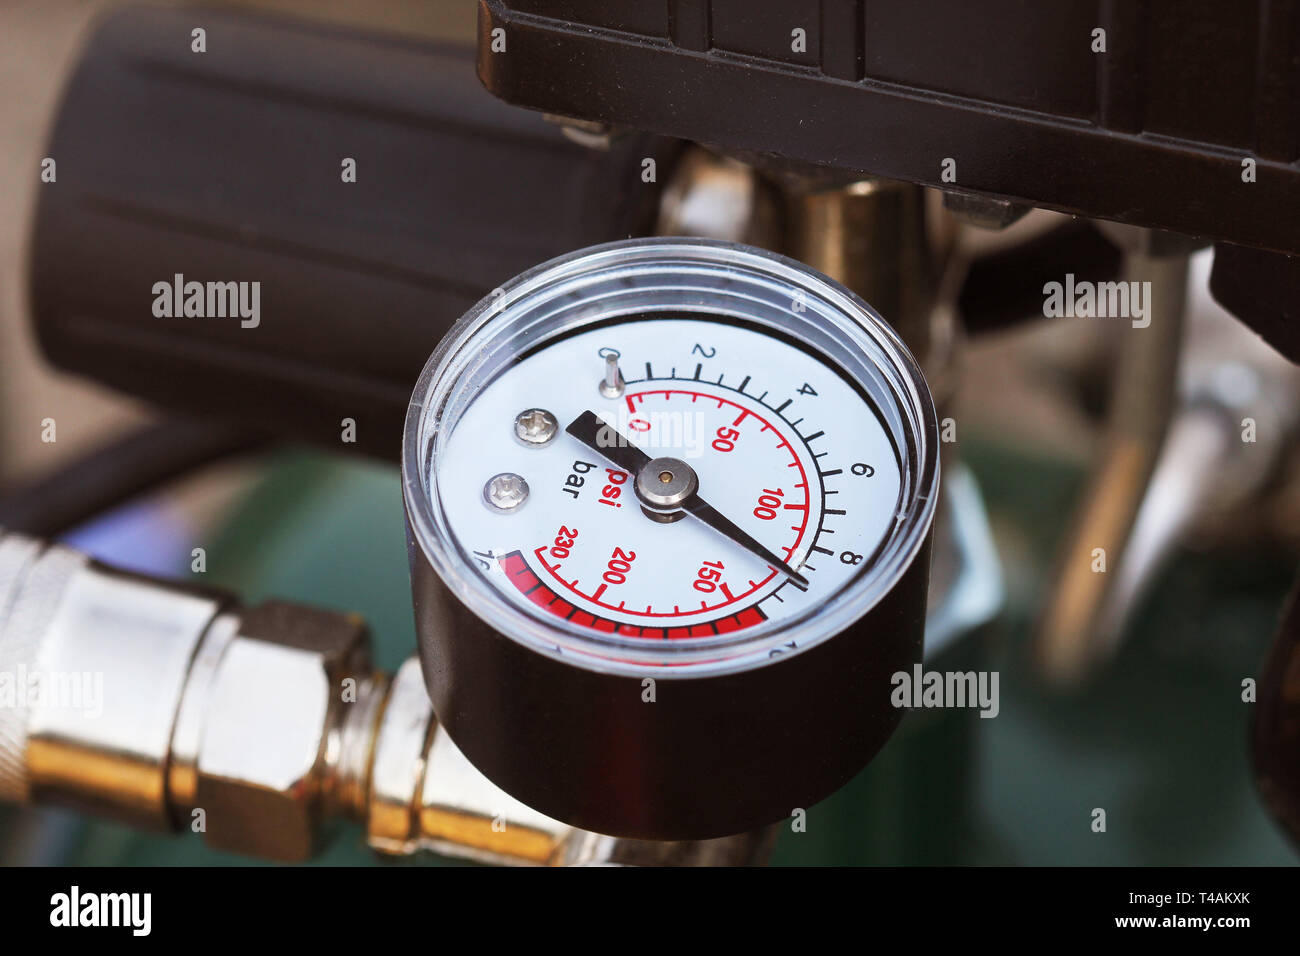 Mechanical pressure gauges. Traditional instruments for measuring pressure. - Stock Image